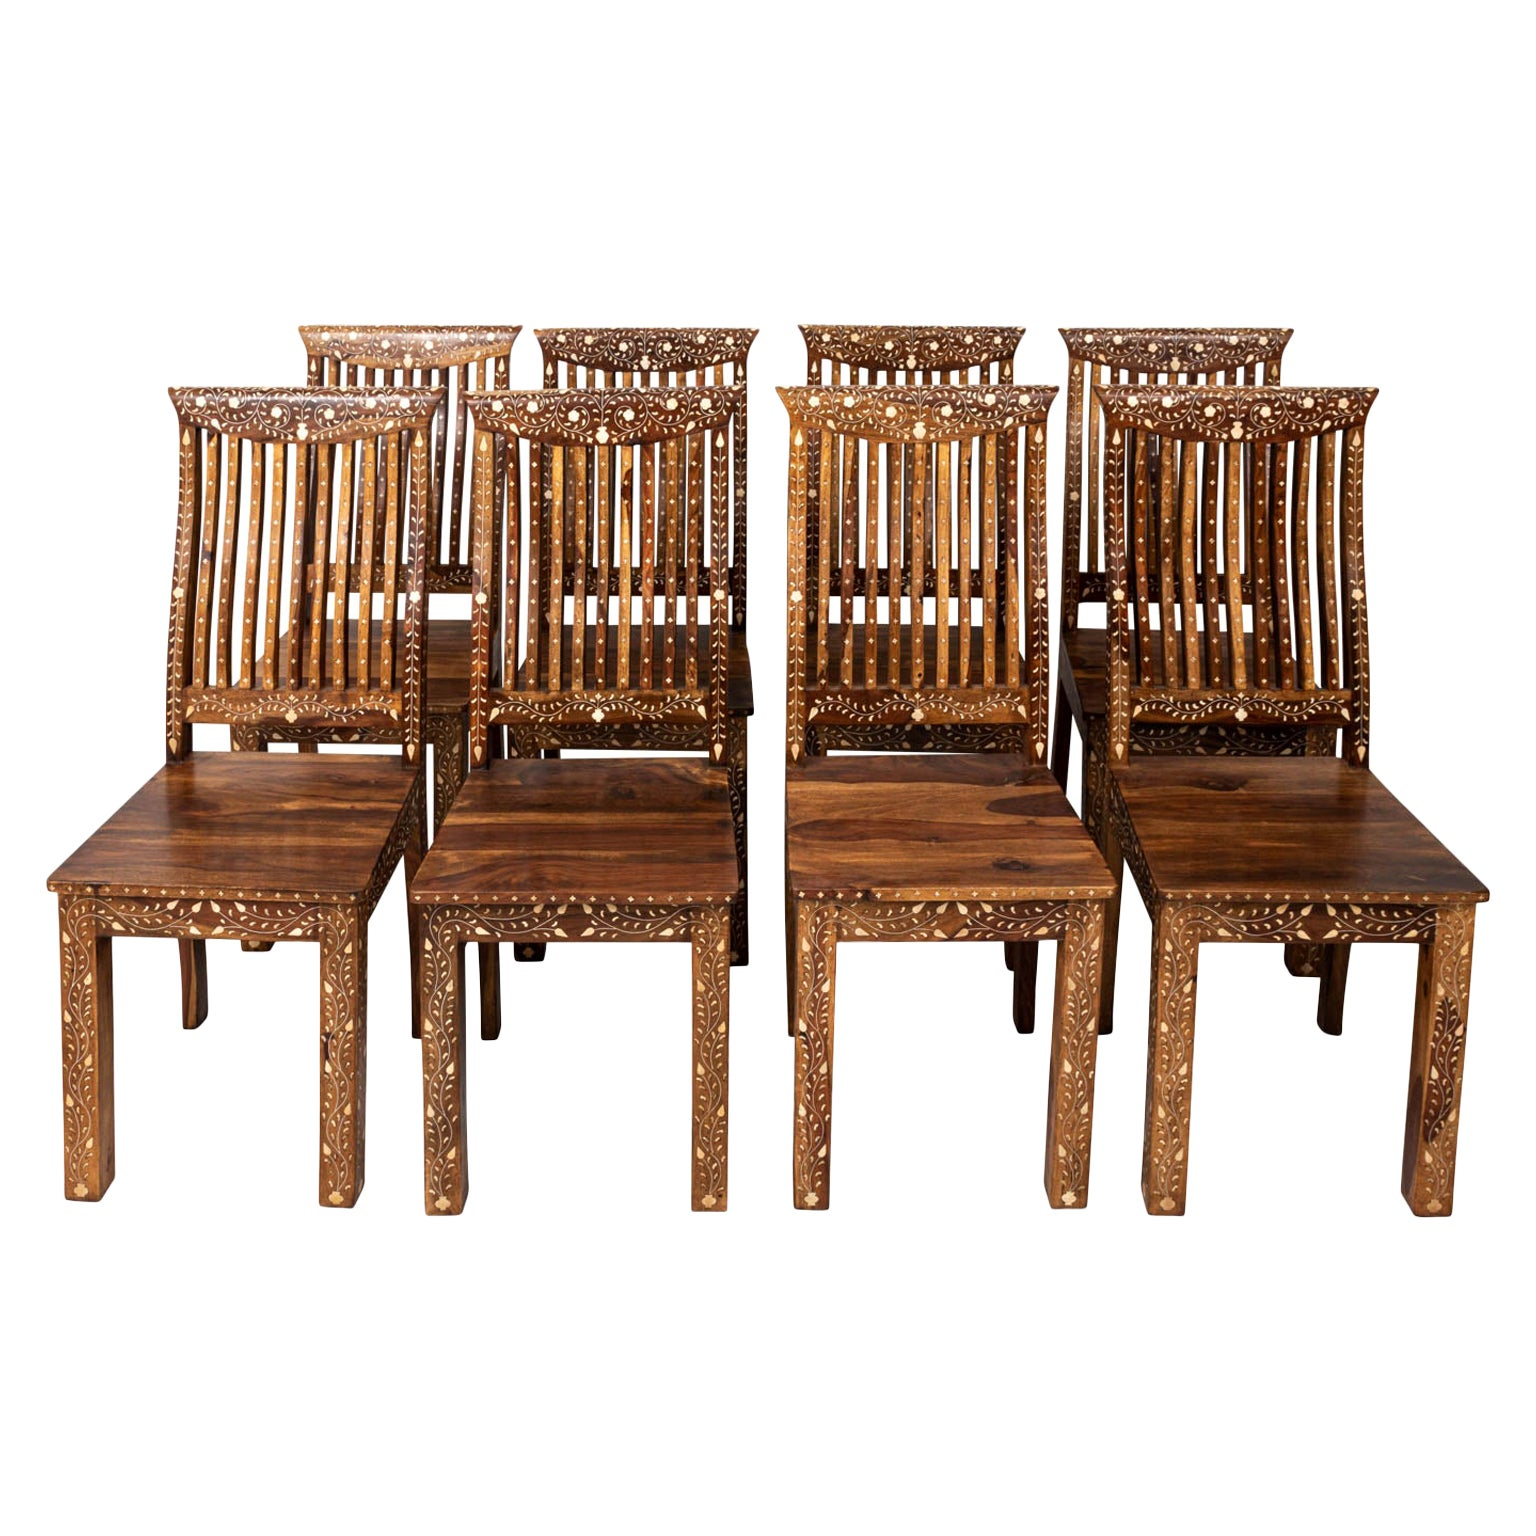 Set of Eight Walnut and Bone Inlaid Dining Room Chairs